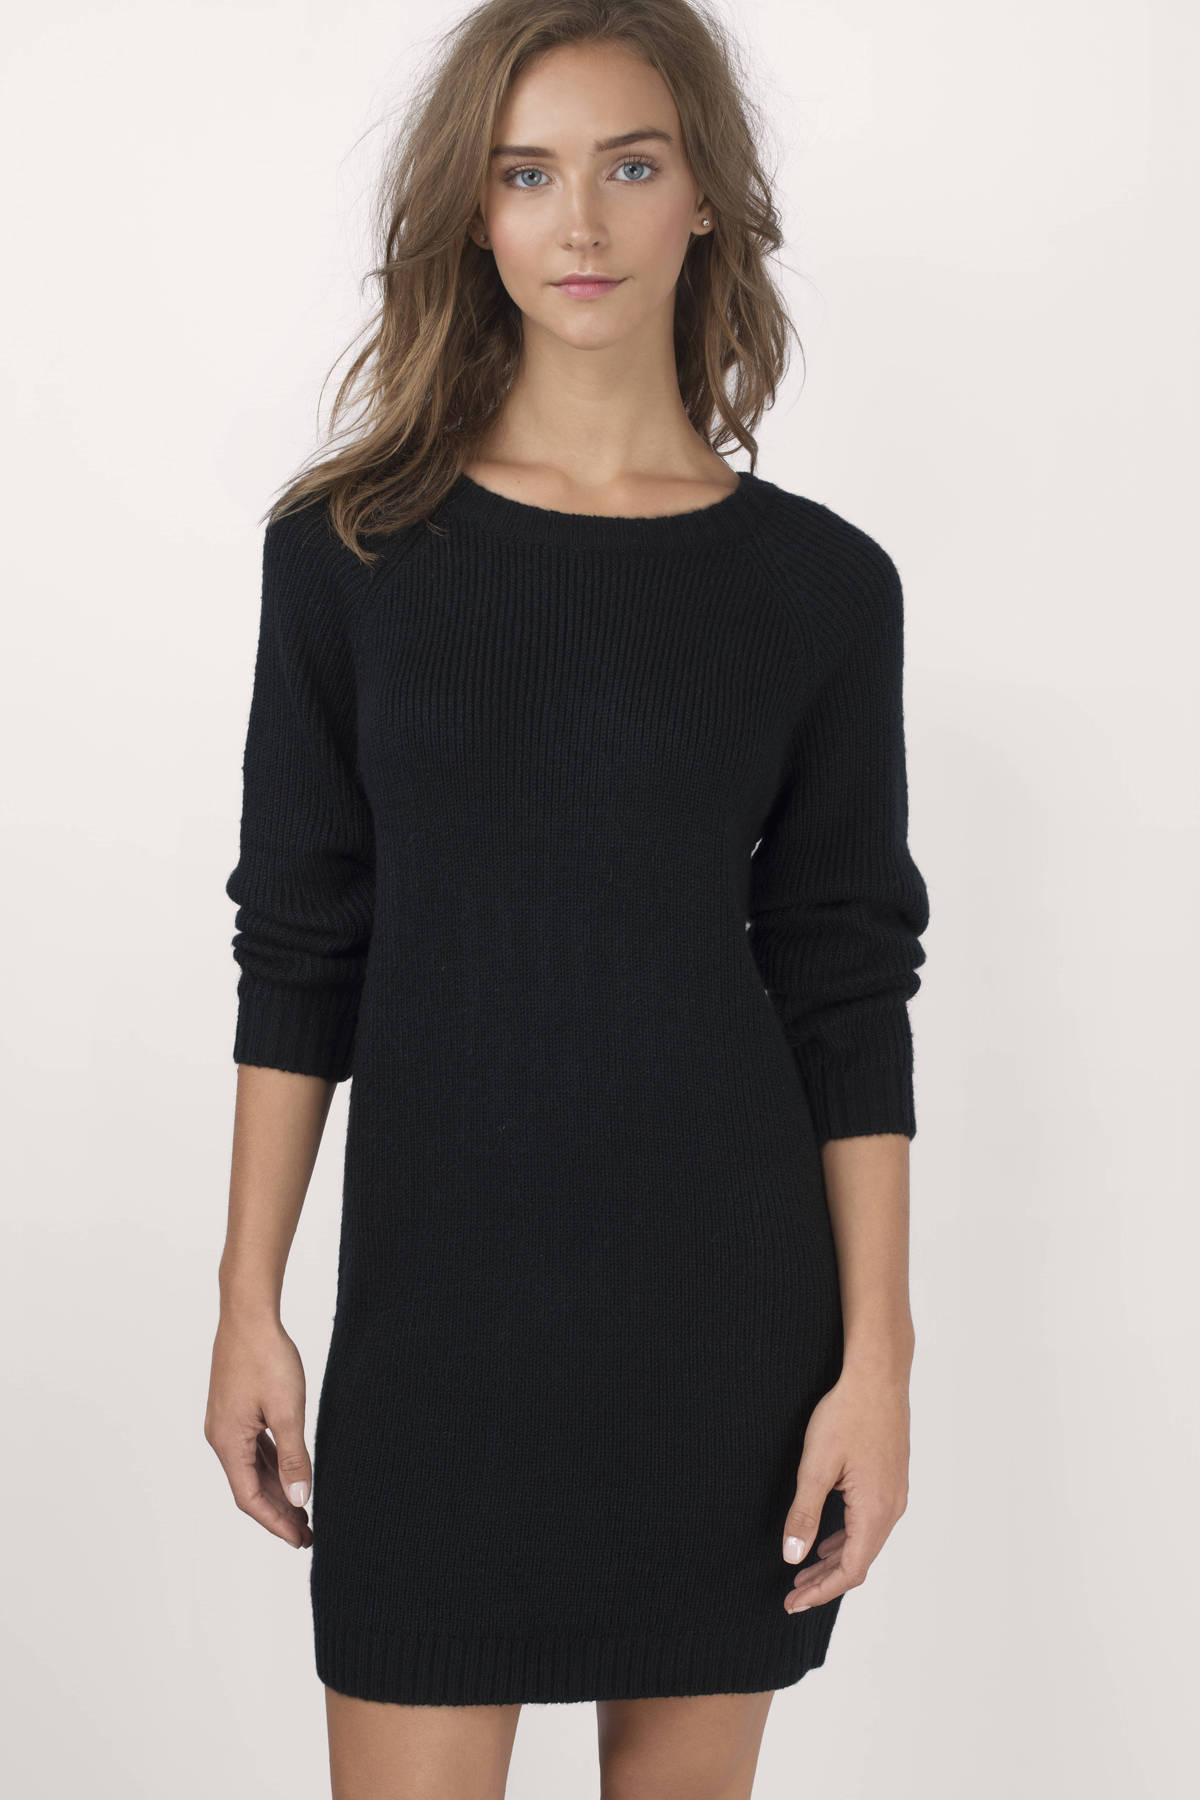 Black Sweater - Black Sweater - Long Sleeve Sweater - $28.00